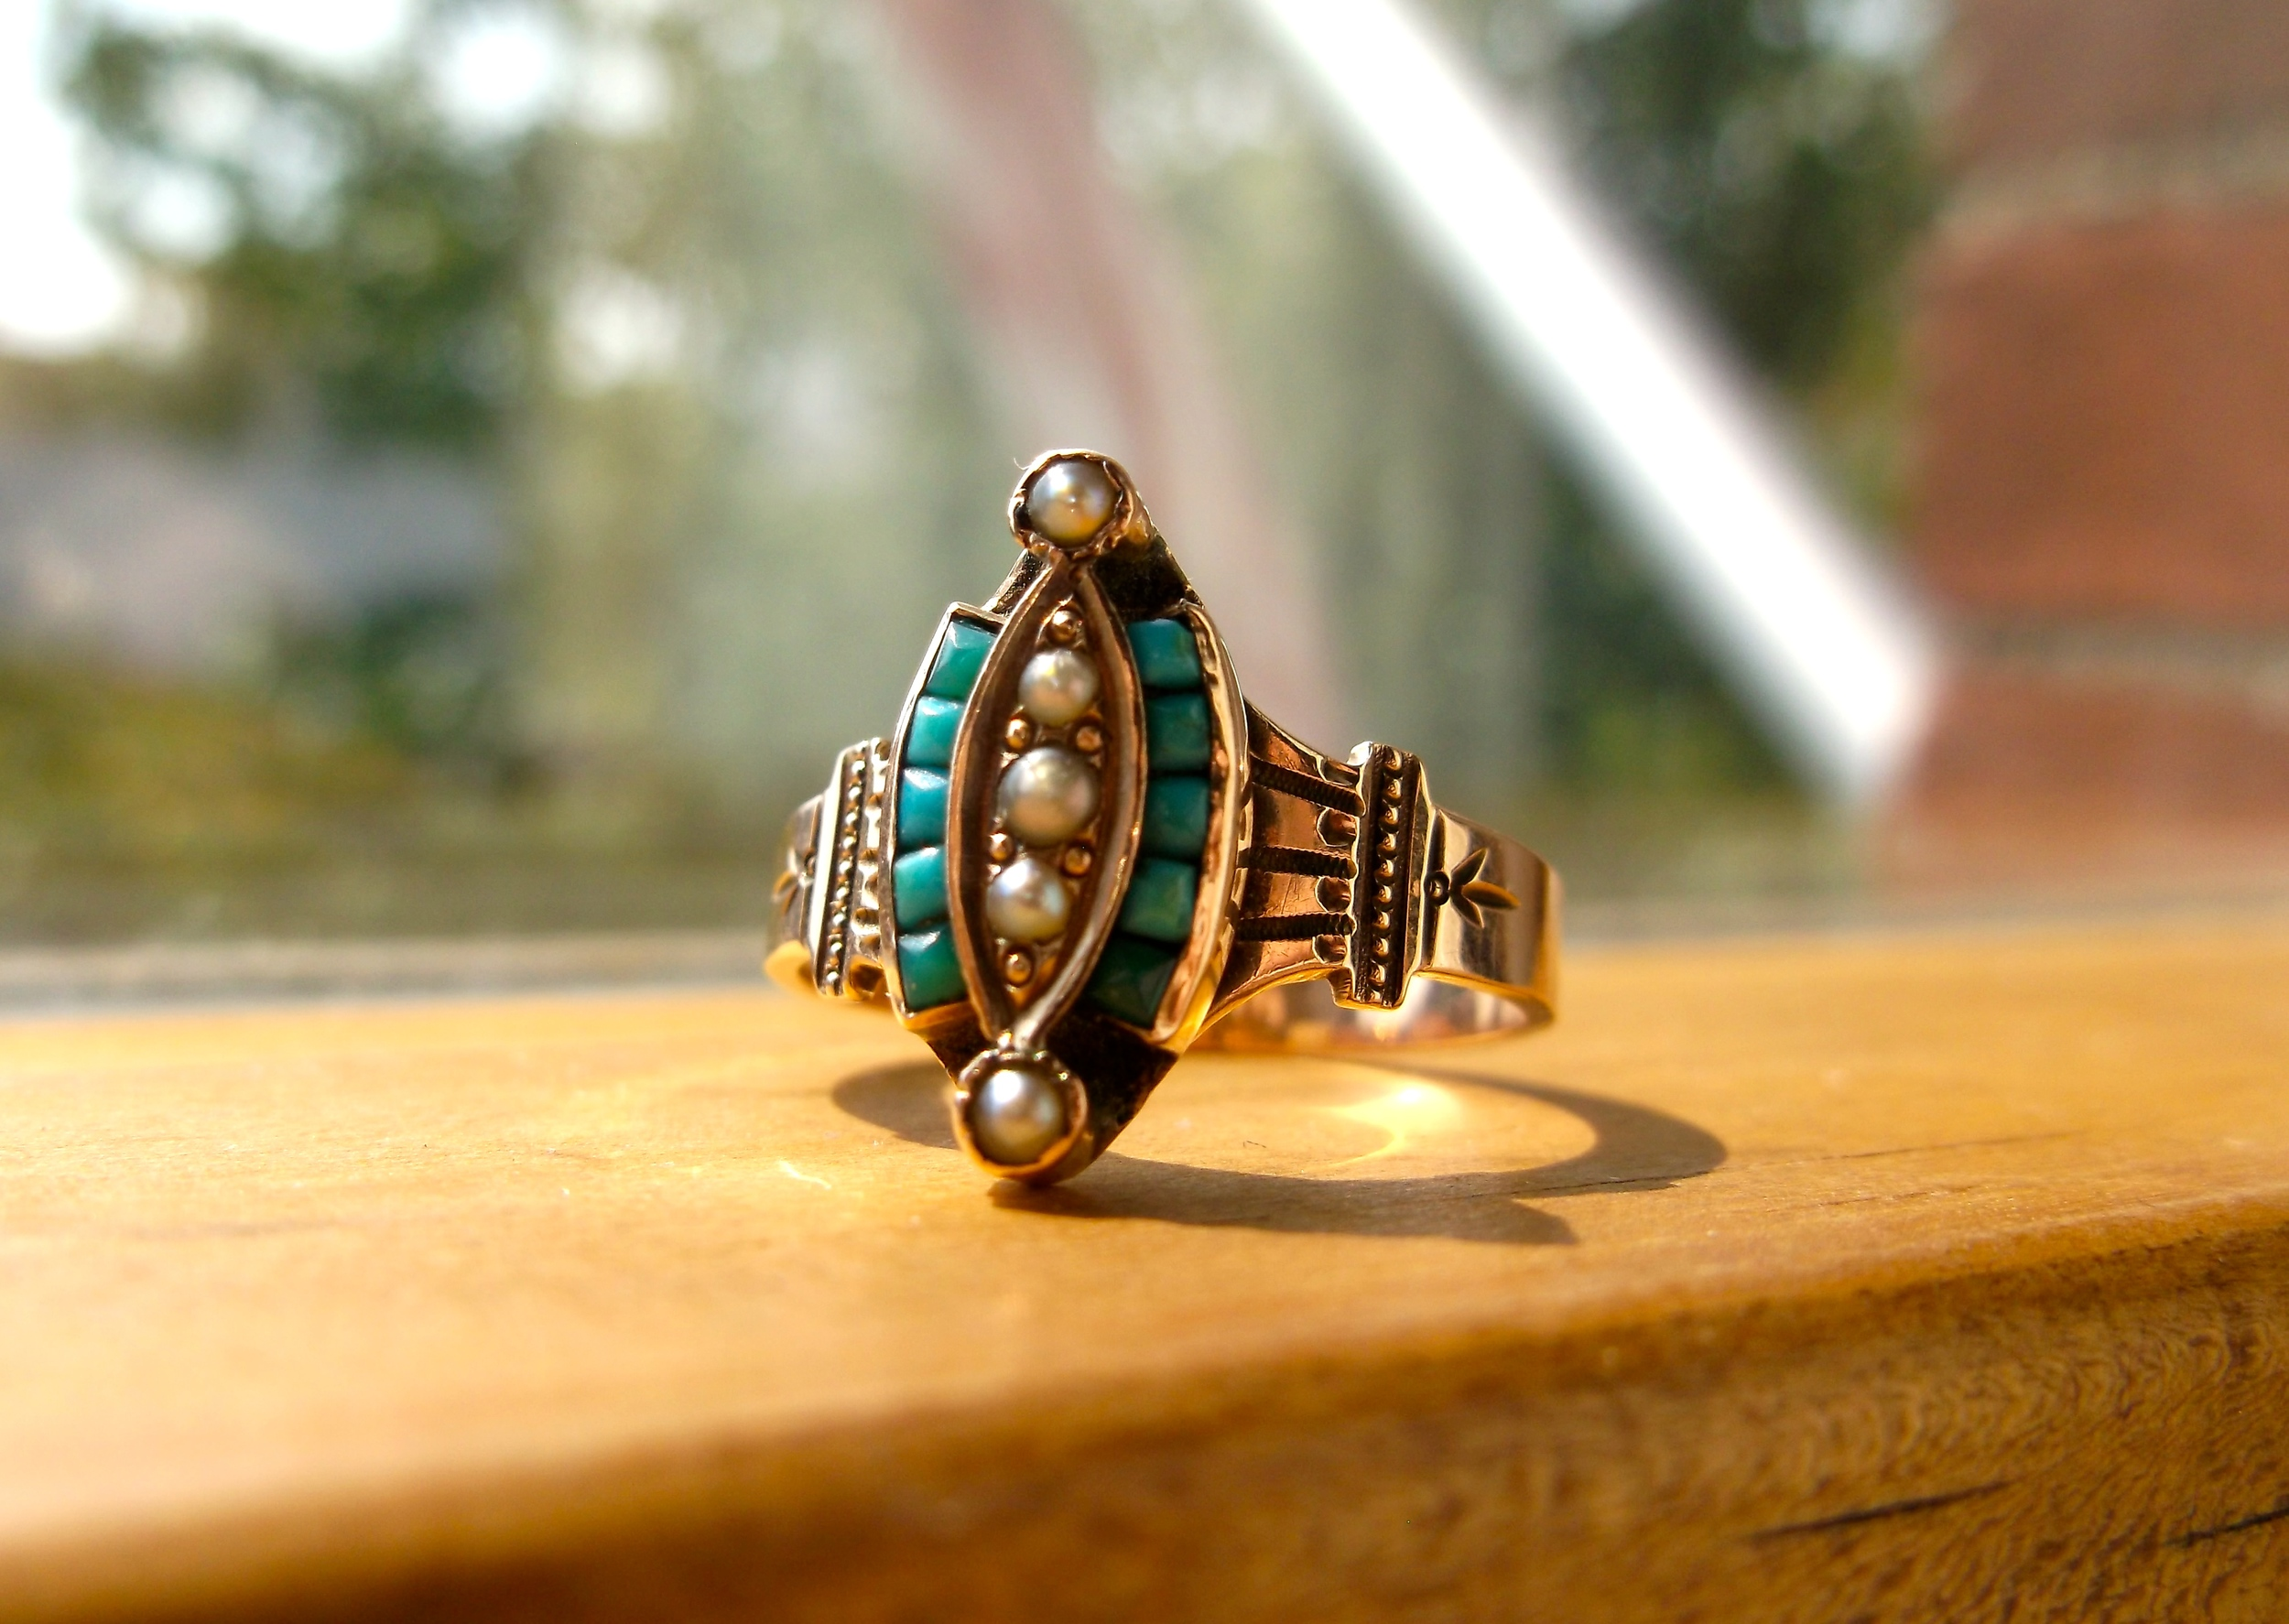 SOLD - Lovely Victorian Era turquoise and seed pearl ring set in yellow gold with beautiful hand engraved detail.